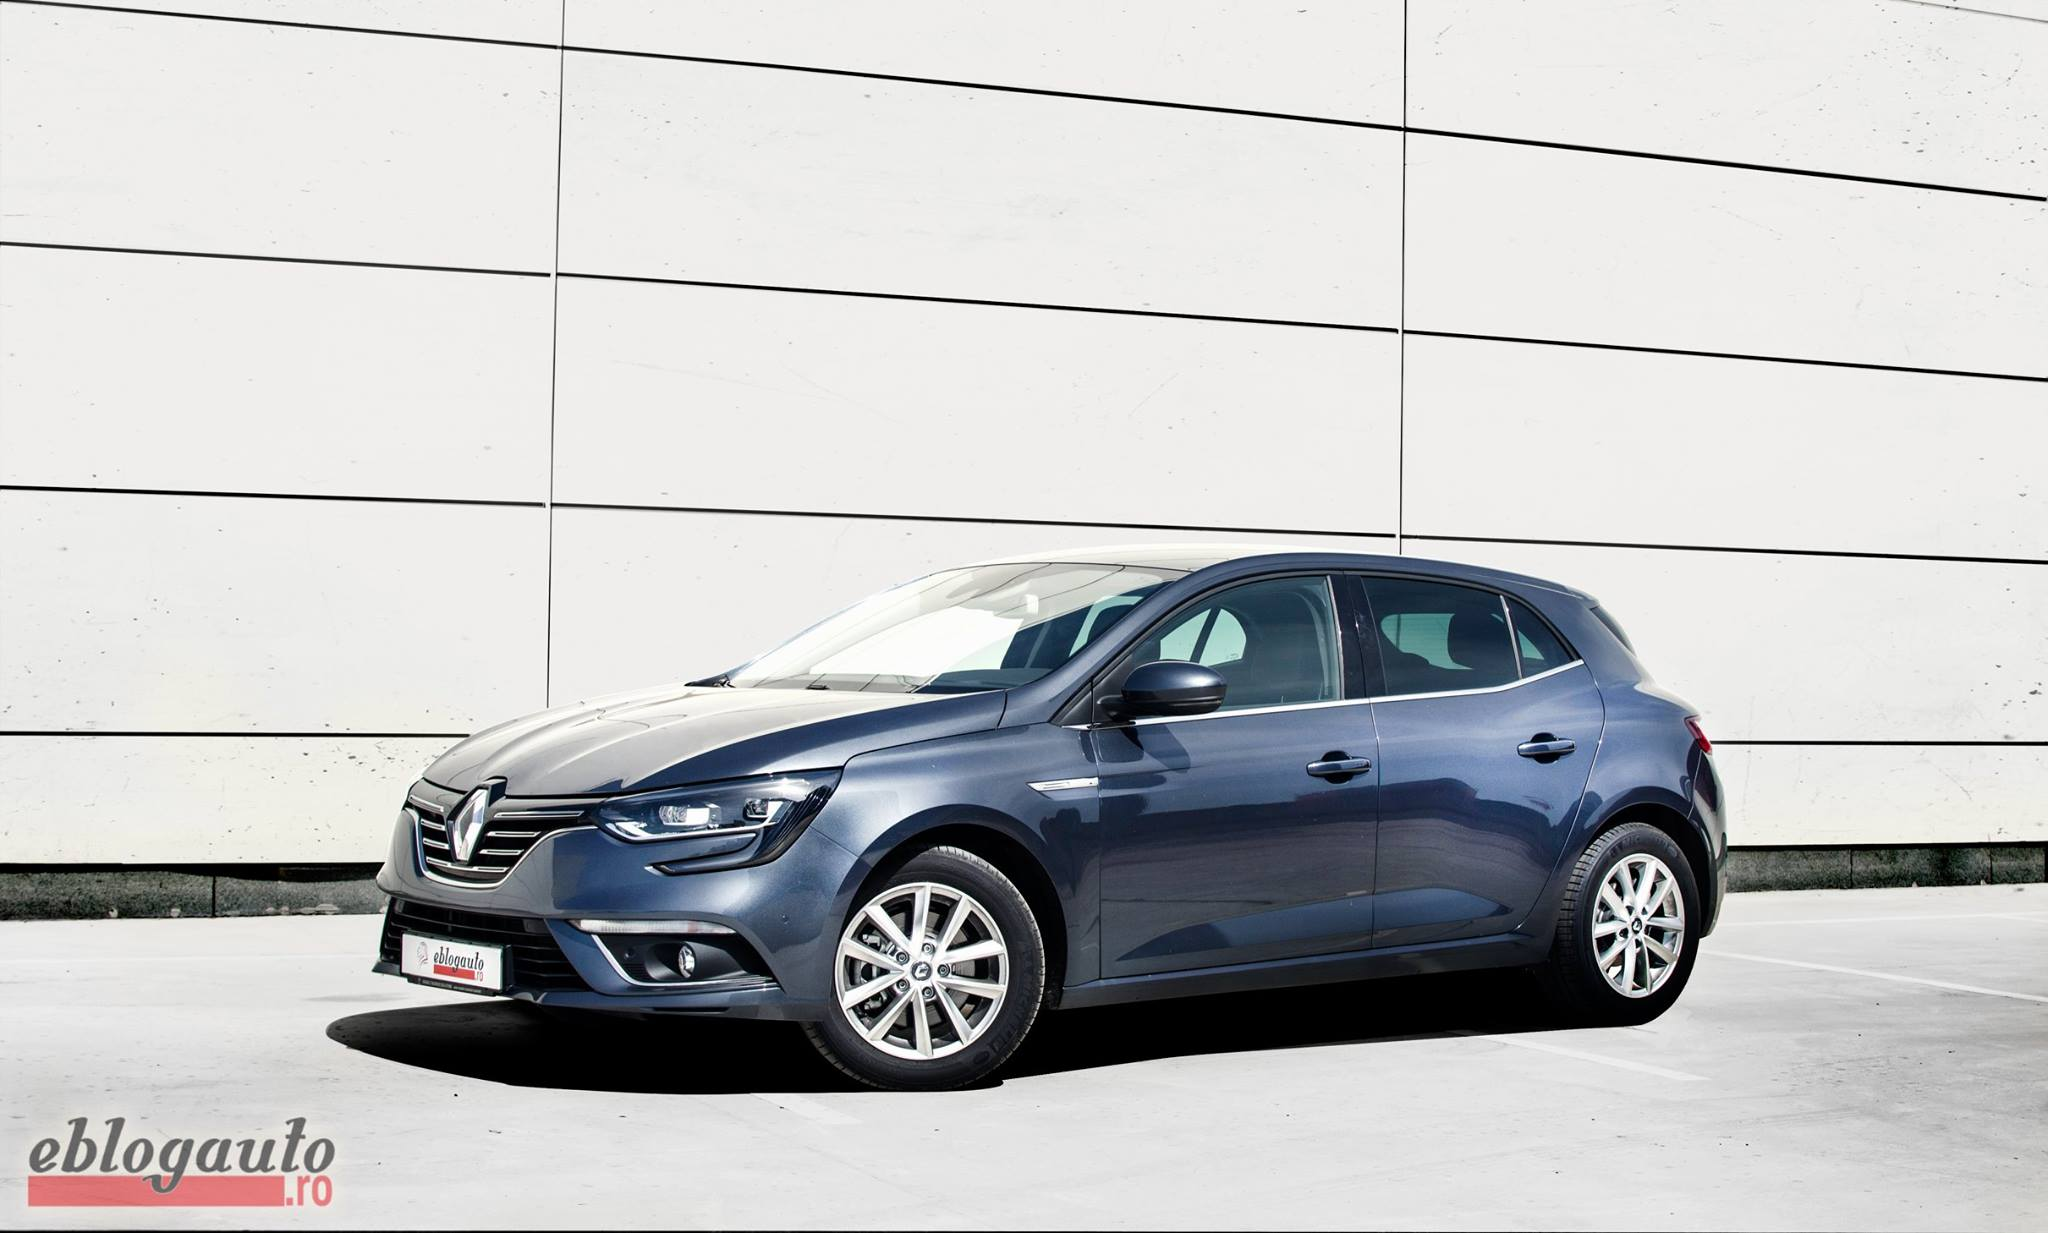 Test Renault Megane 4 1.6 dci 130 CP REVIEW & VIDEO